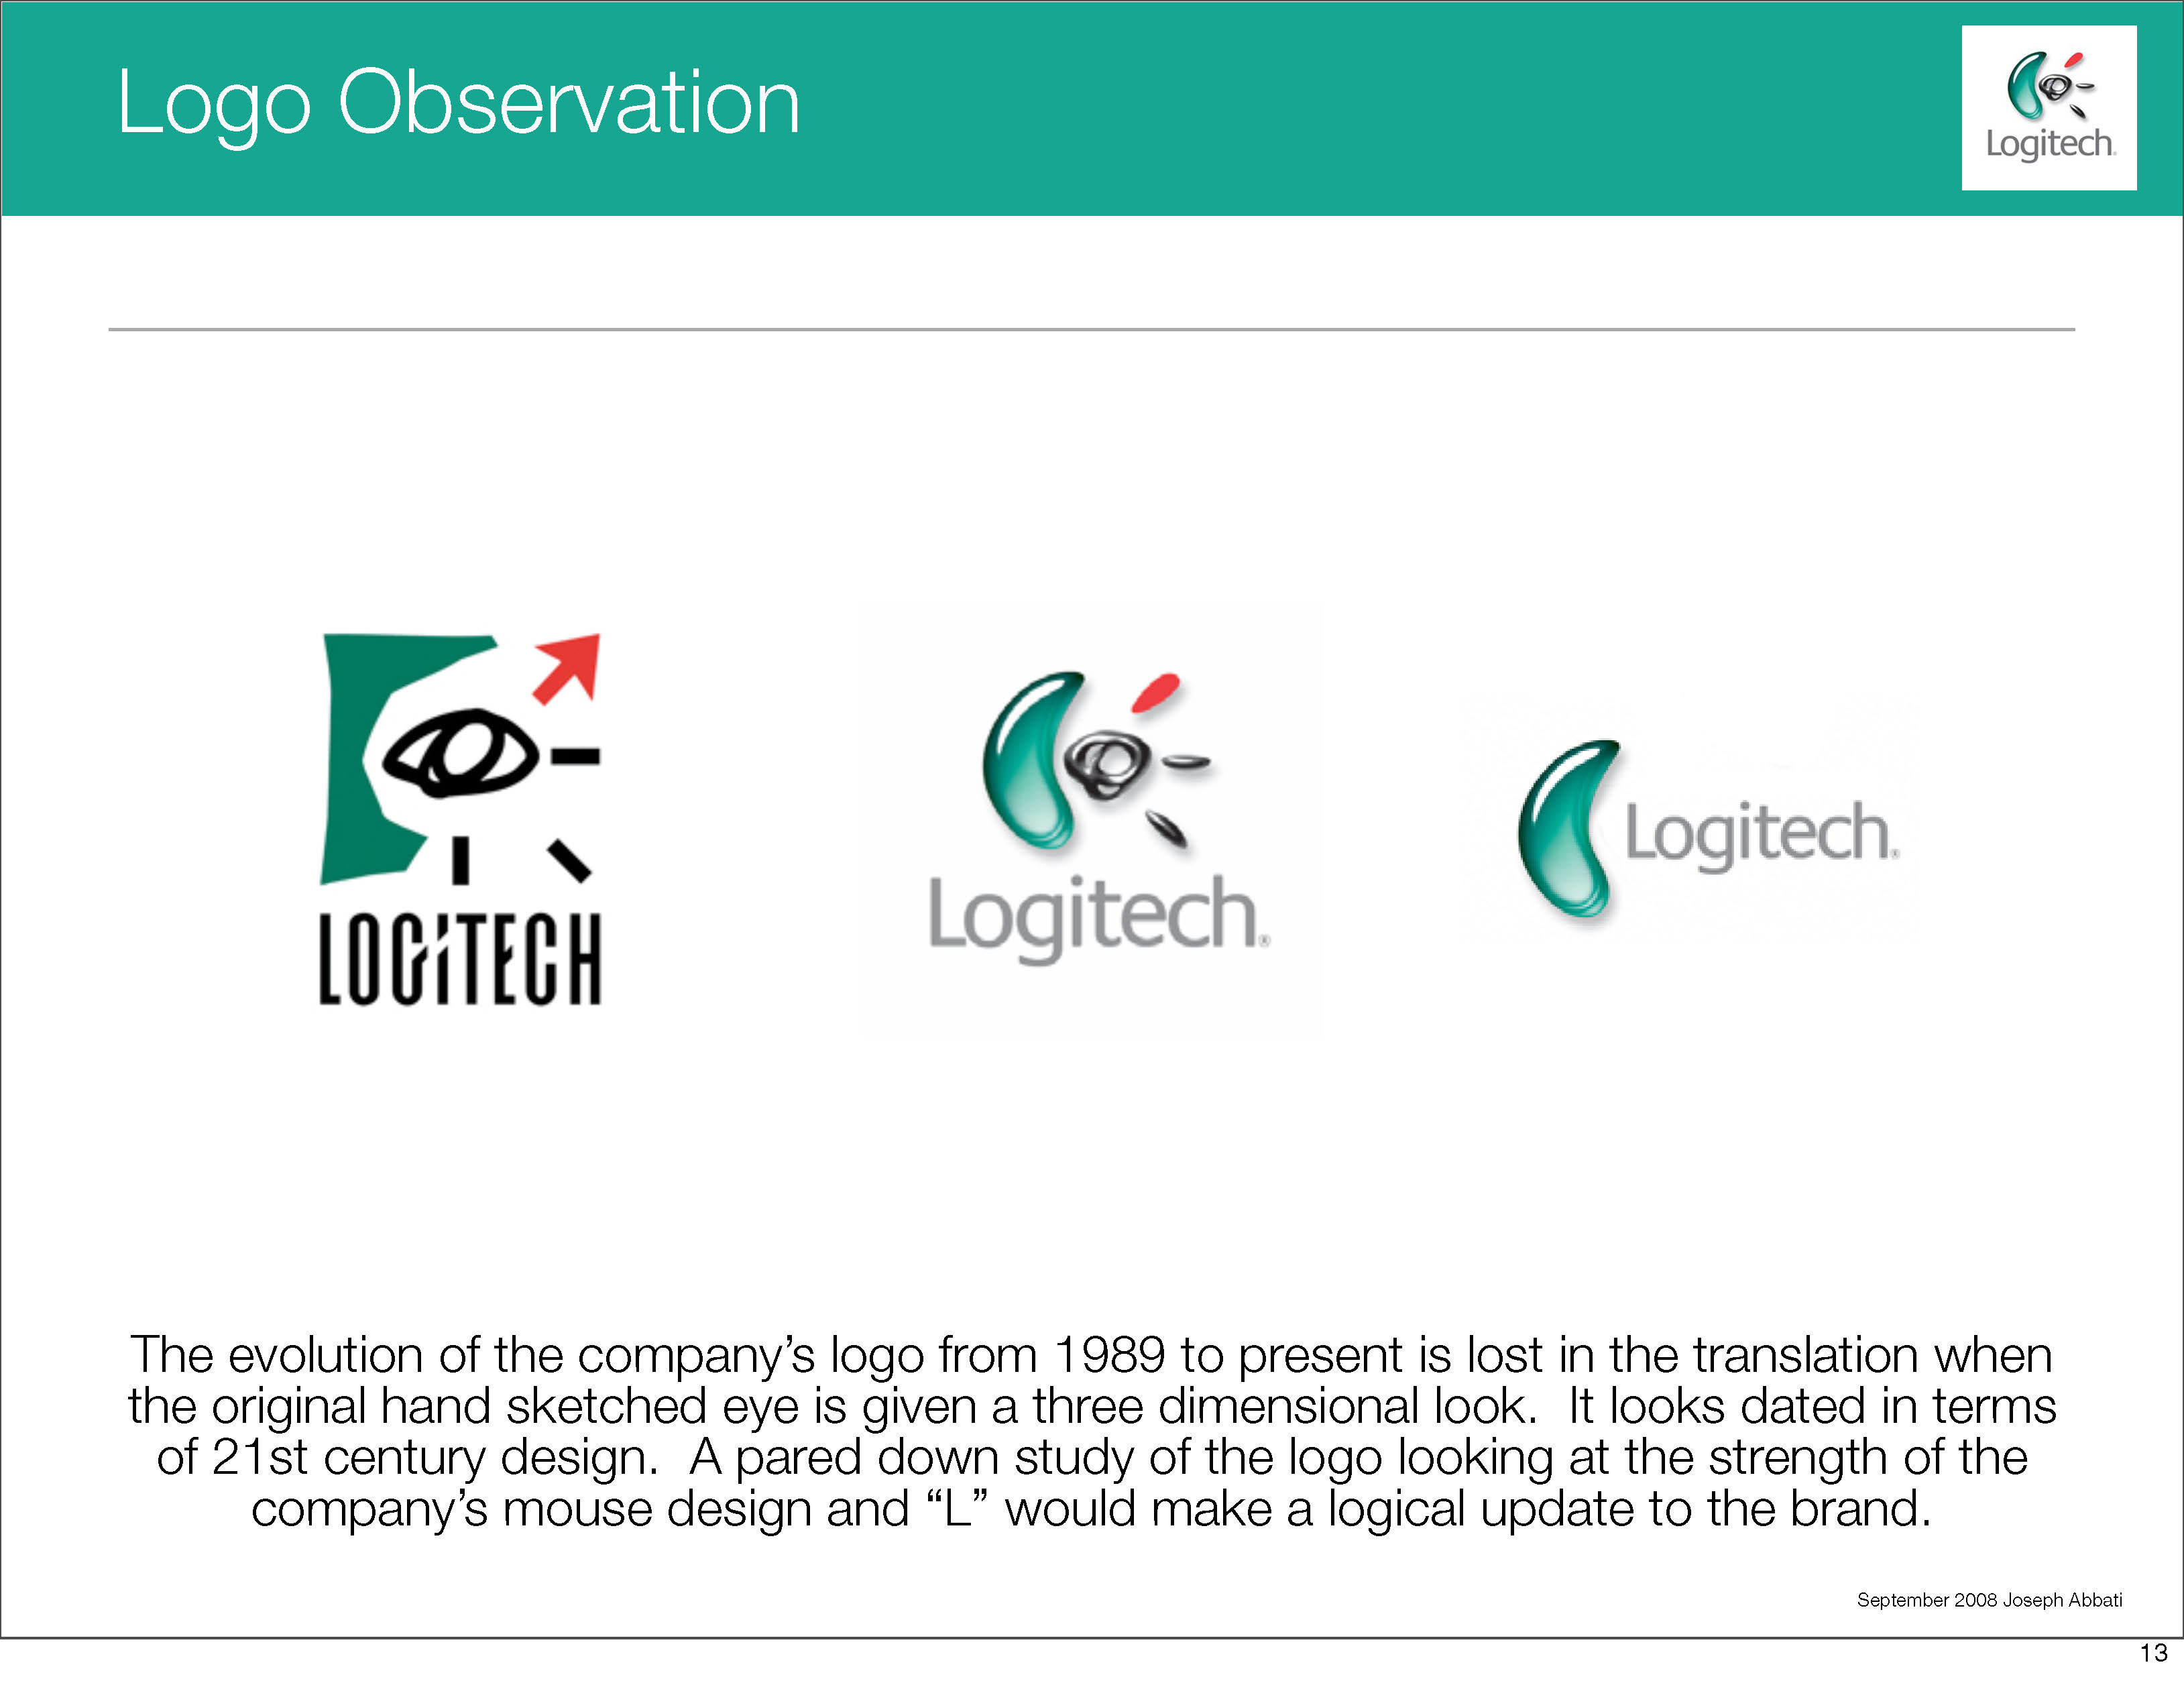 logitech swot analysis Swot analysis review of logitech international sa released on 2nd january,2017 logitech international sa (logn) - financial and strategic swot analysis review provides you an in-depth strategic .